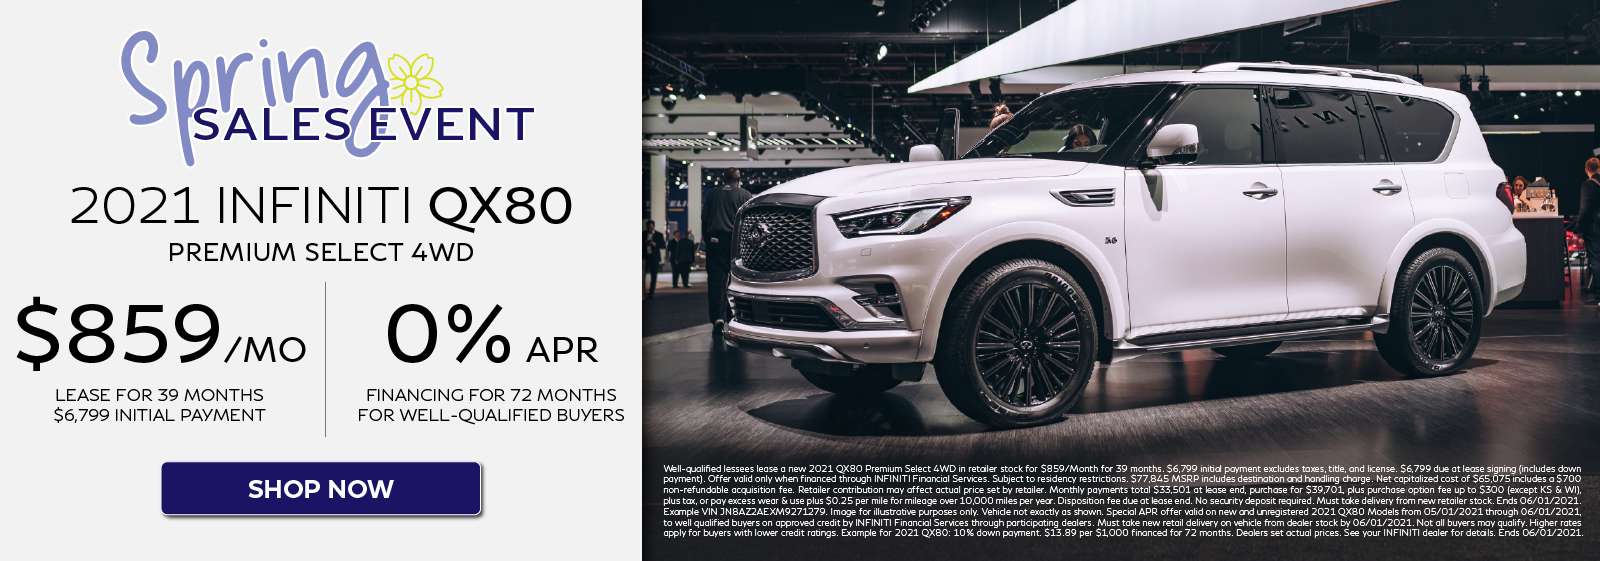 2021 QX80 Premium Select 4WD Lease and APR Offers. Click to shop now.